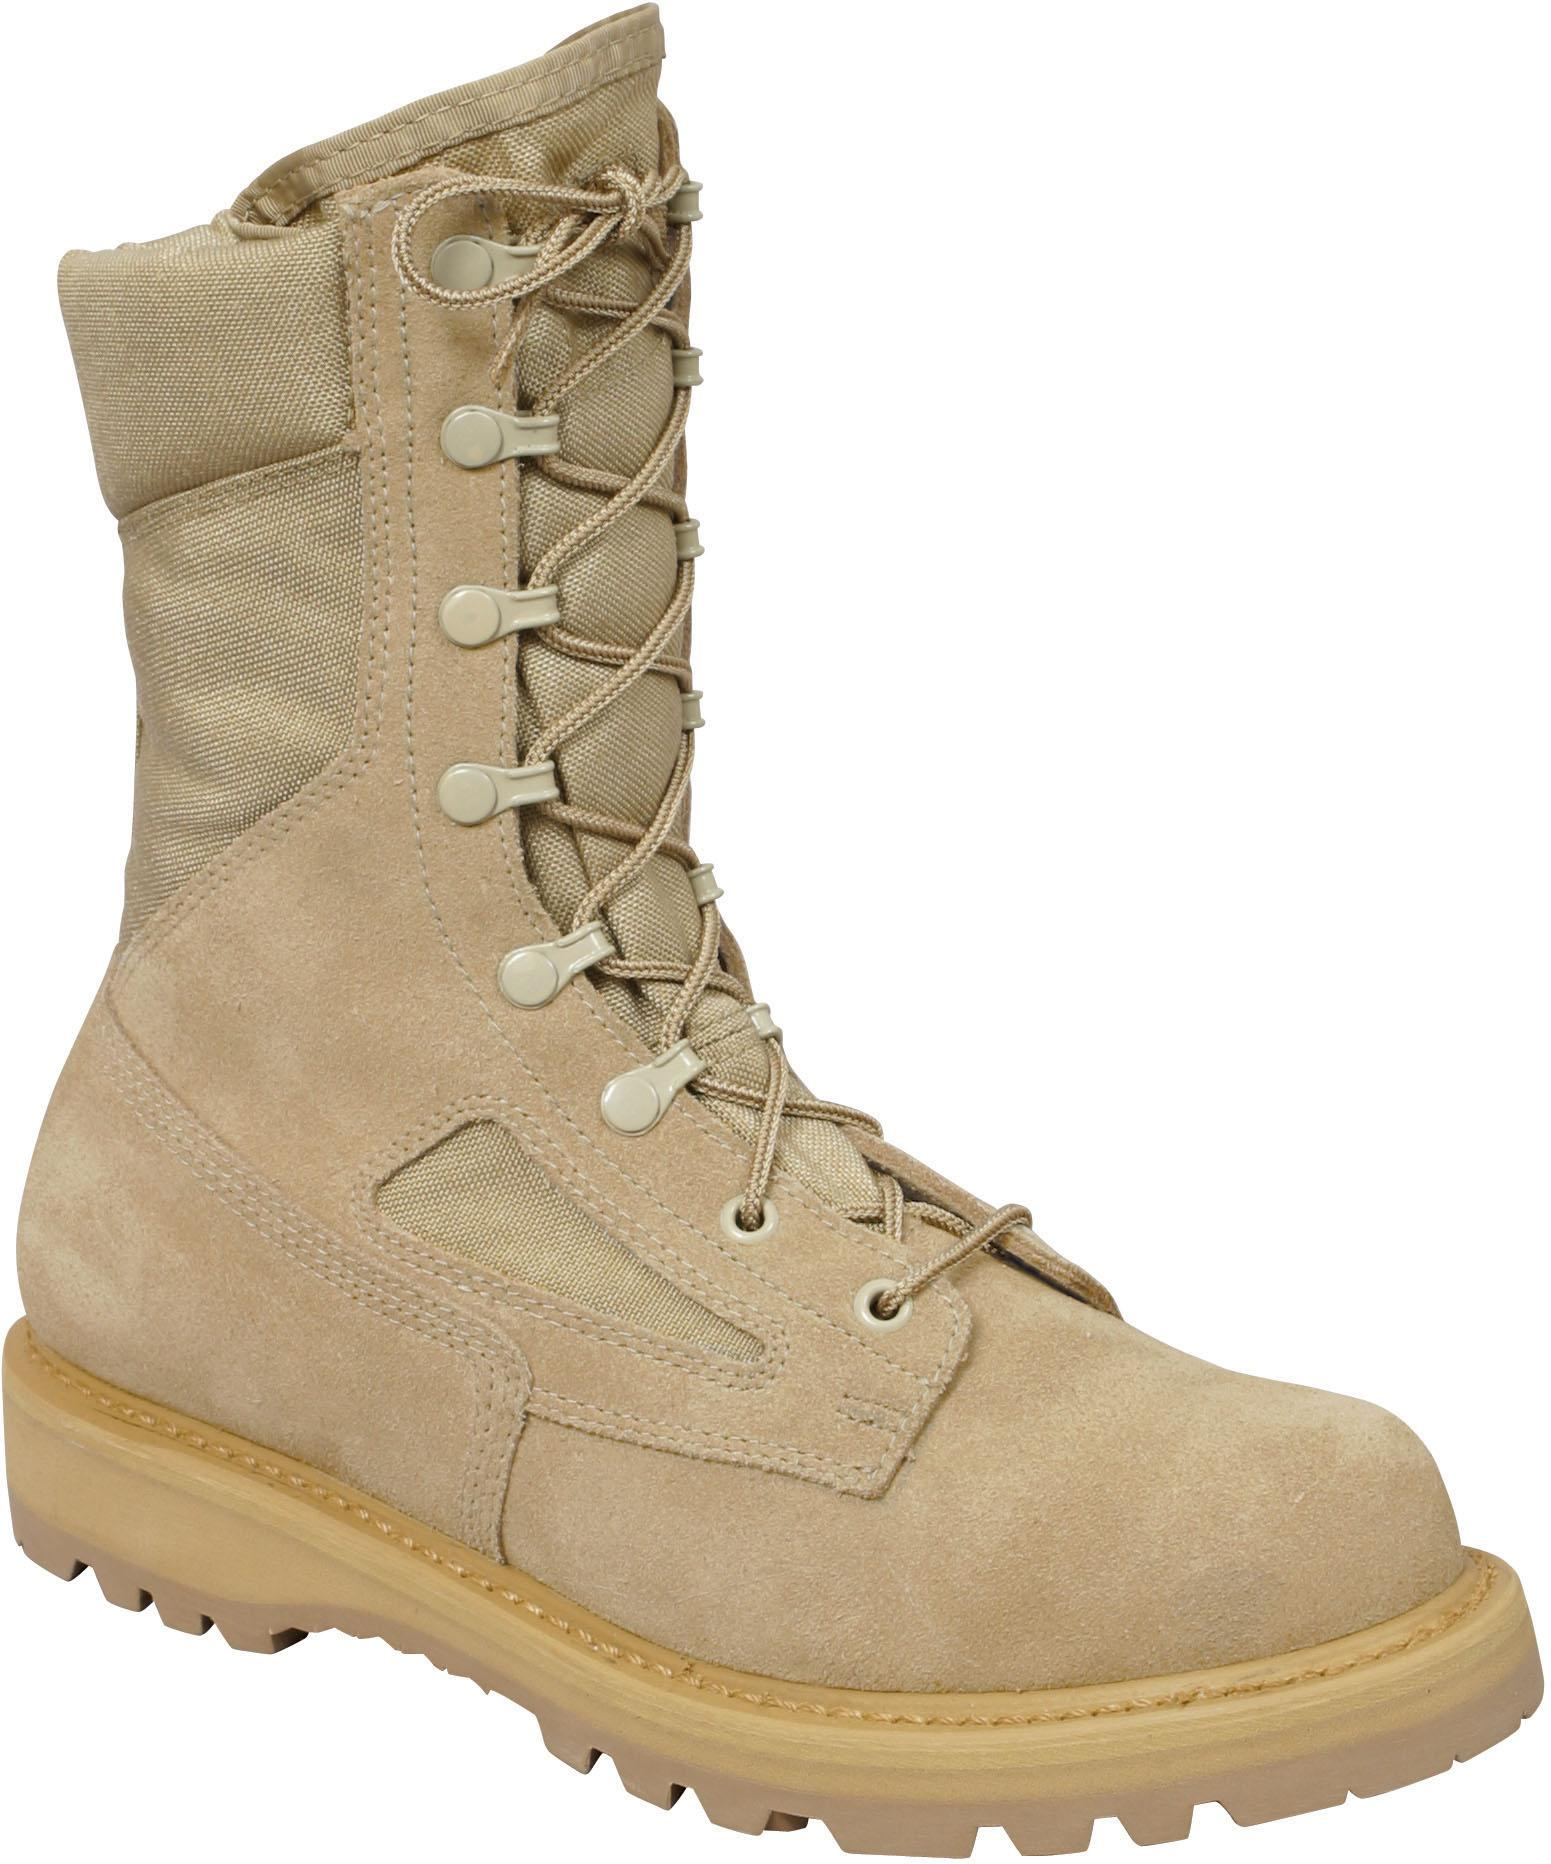 bbf6ef7f0a9 Rocky Hot Weather Military Duty Boot